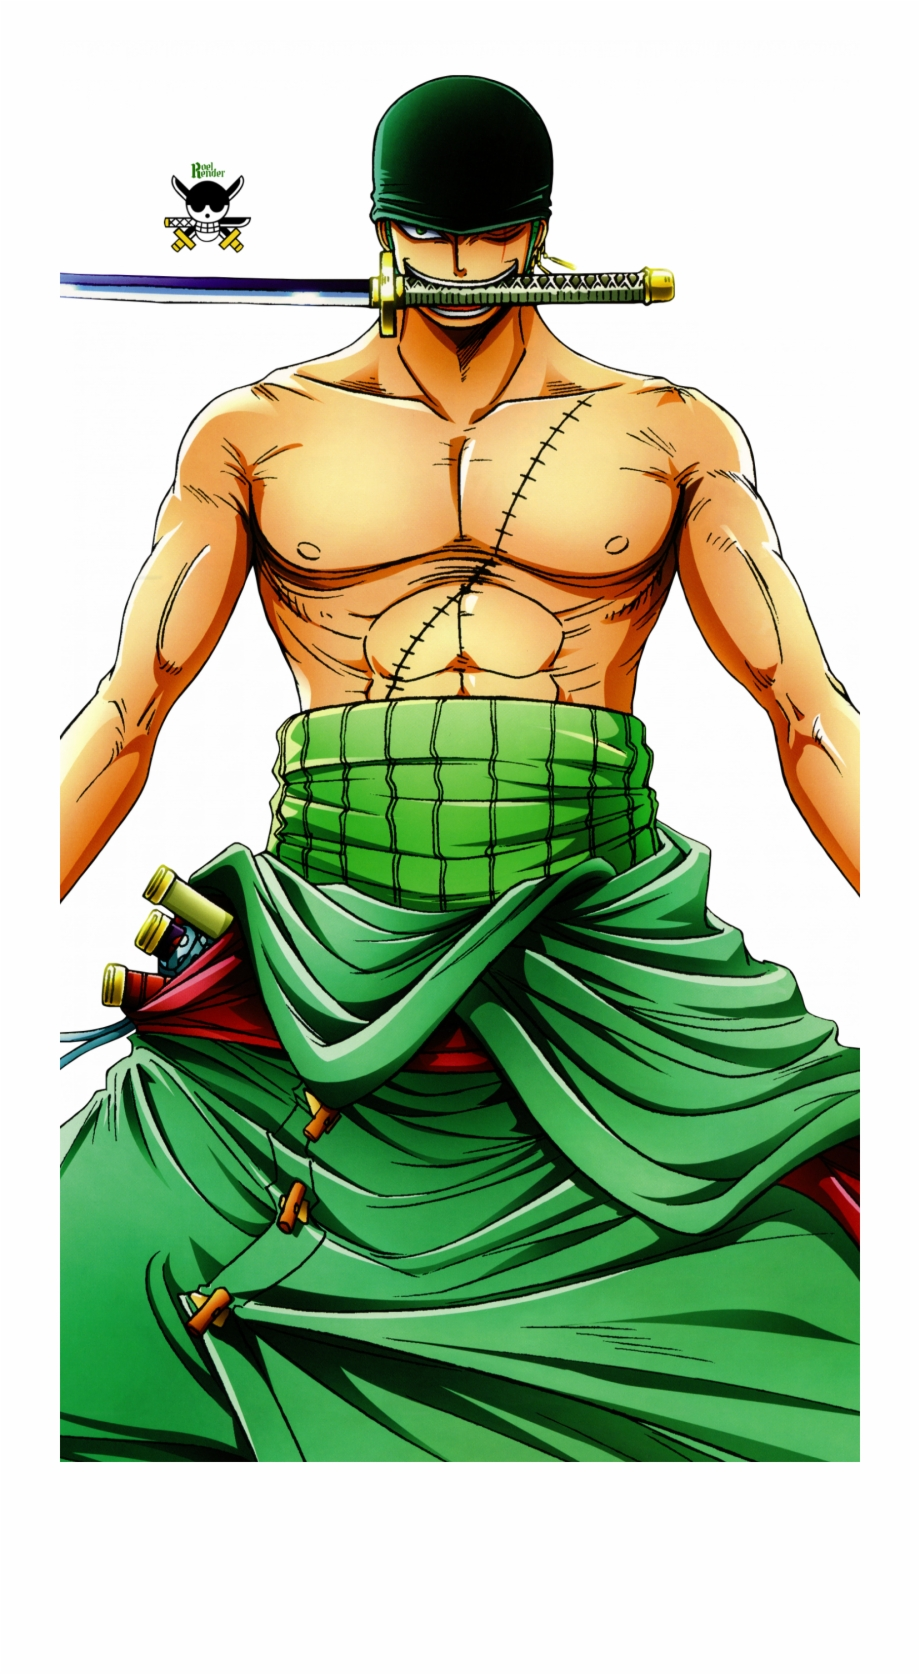 Roronoa Zoro Hd Wallpaper Animation Wallpapers Roronoa Zoro 3 Swords Transparent Png Download 5183898 Vippng